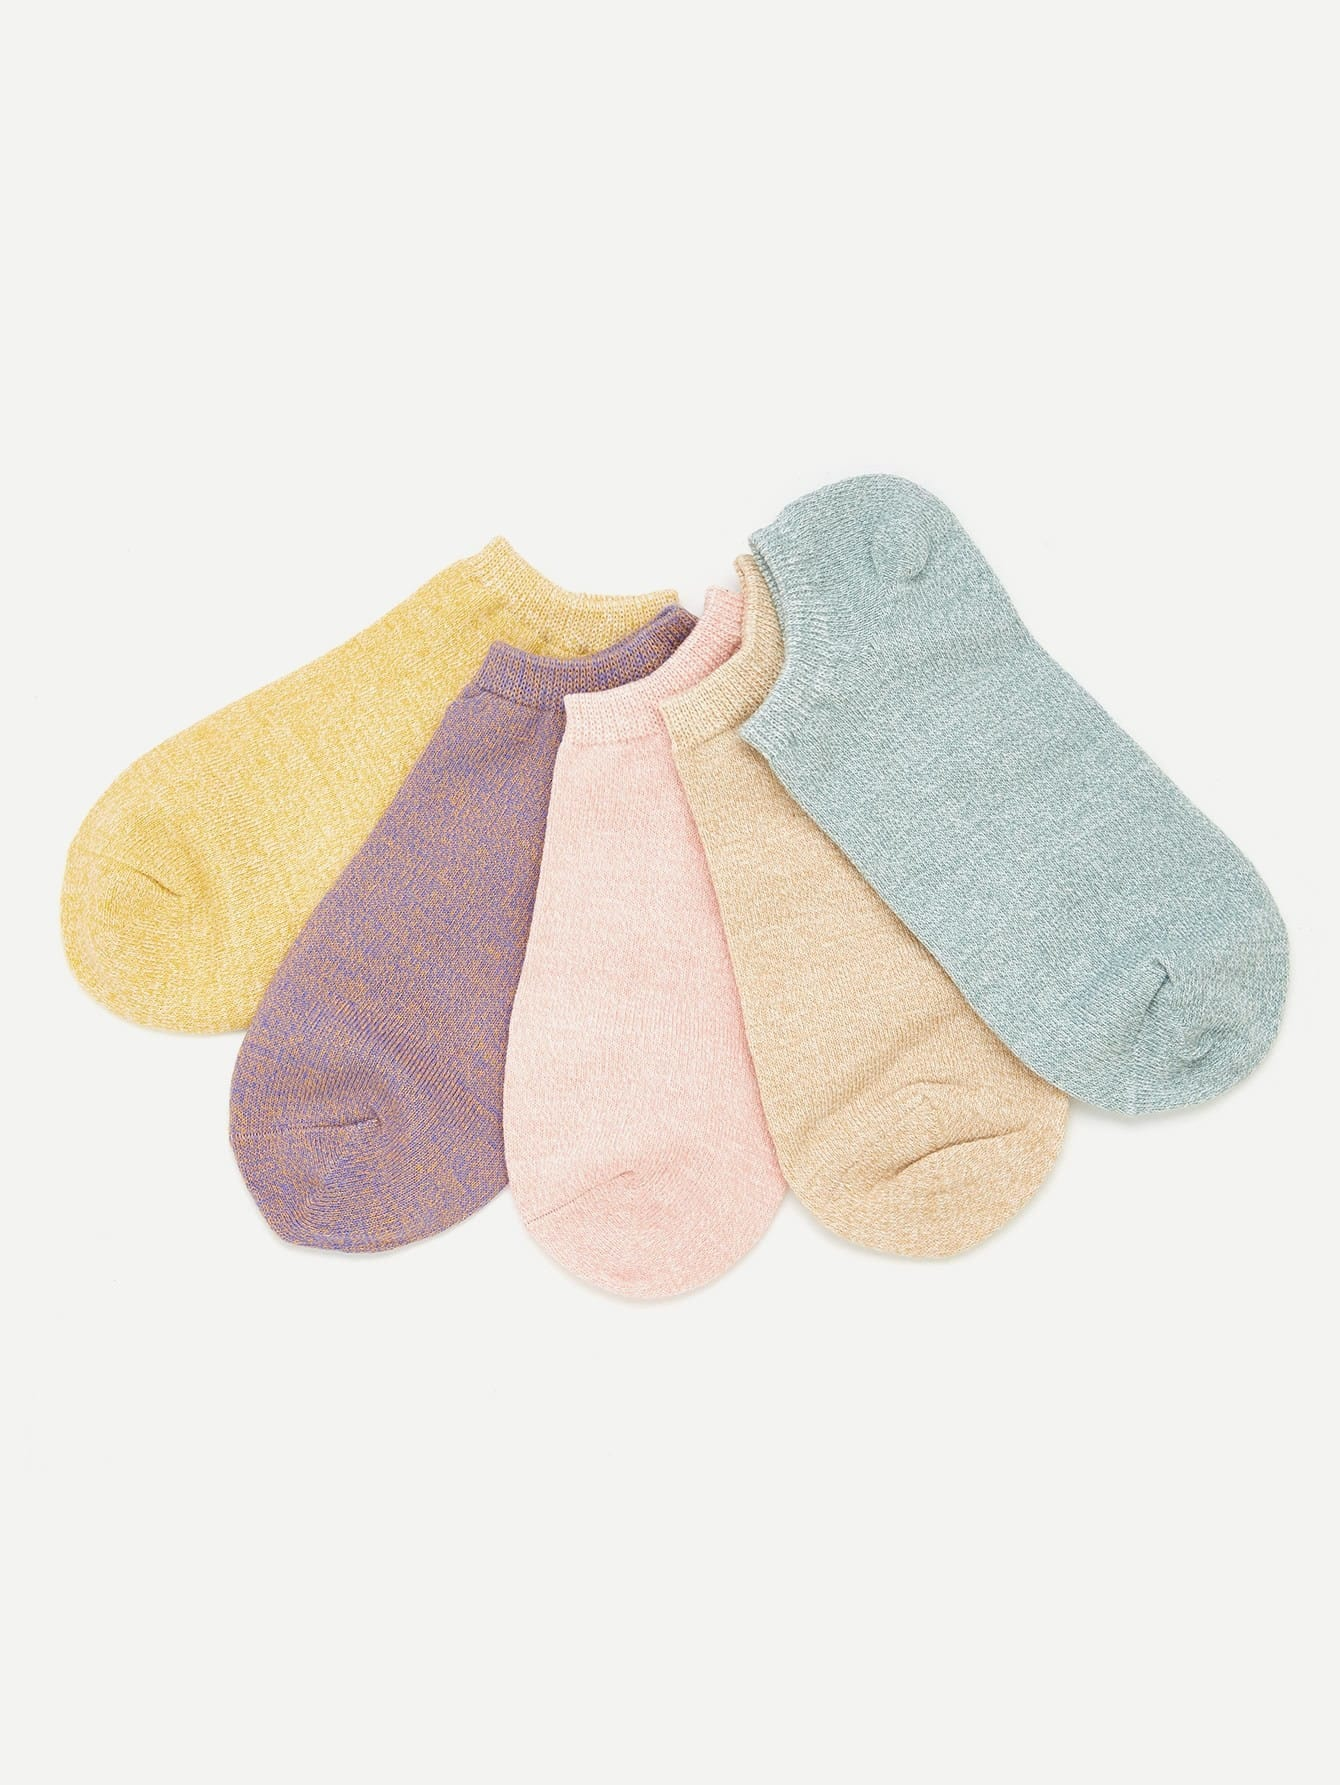 Cotton Invisible Ankle Socks 5pairs женские чулки 1 5pairs